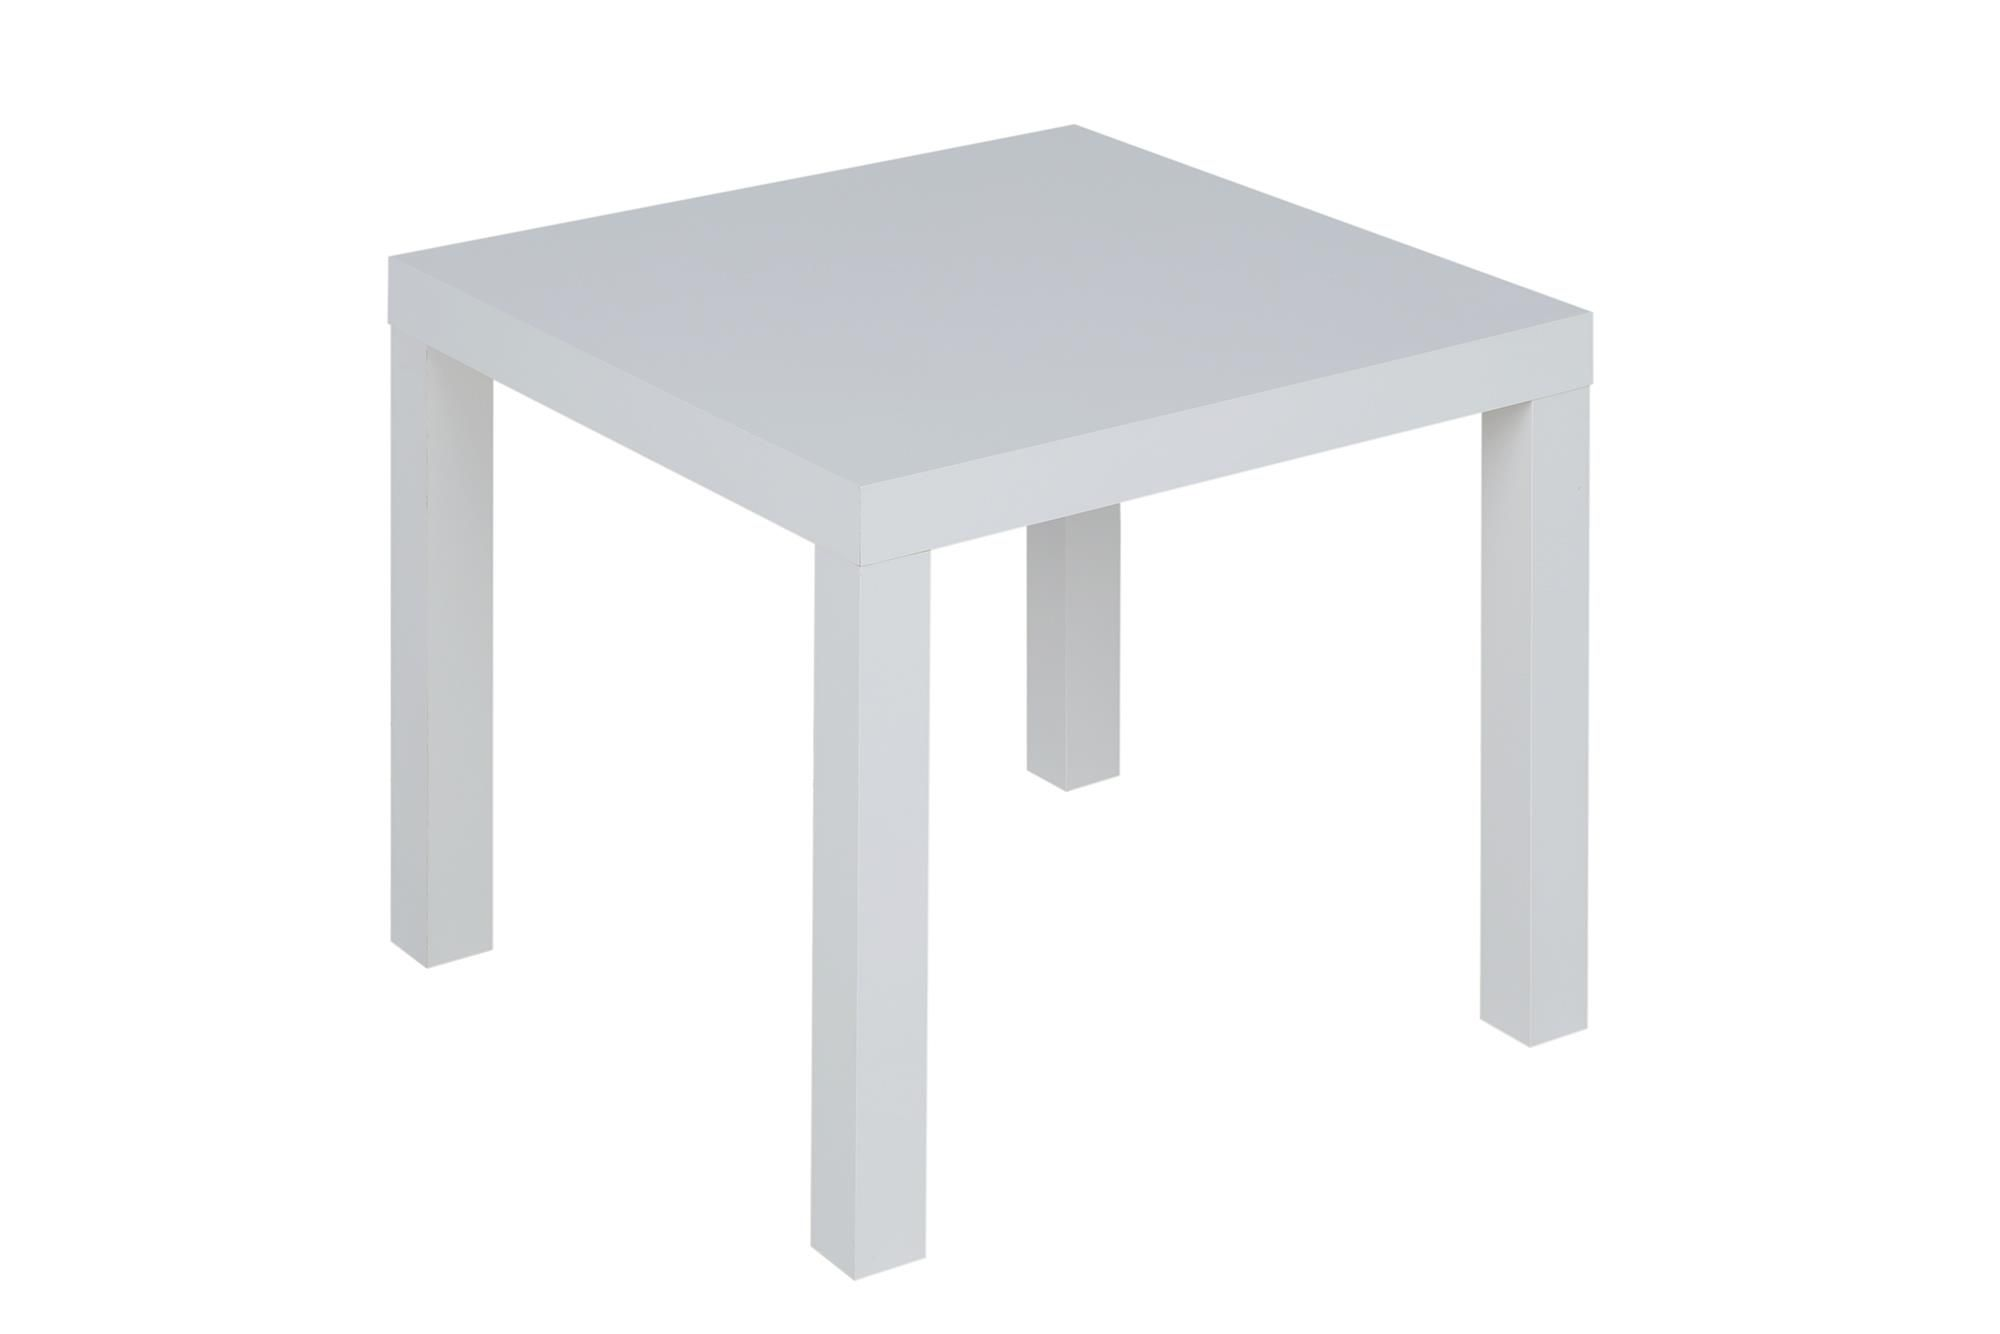 Mainstays Parsons Square End Table Multiple Colors Ad Square Aff Parsons Mainstays In 2020 End Tables Table Home Decor